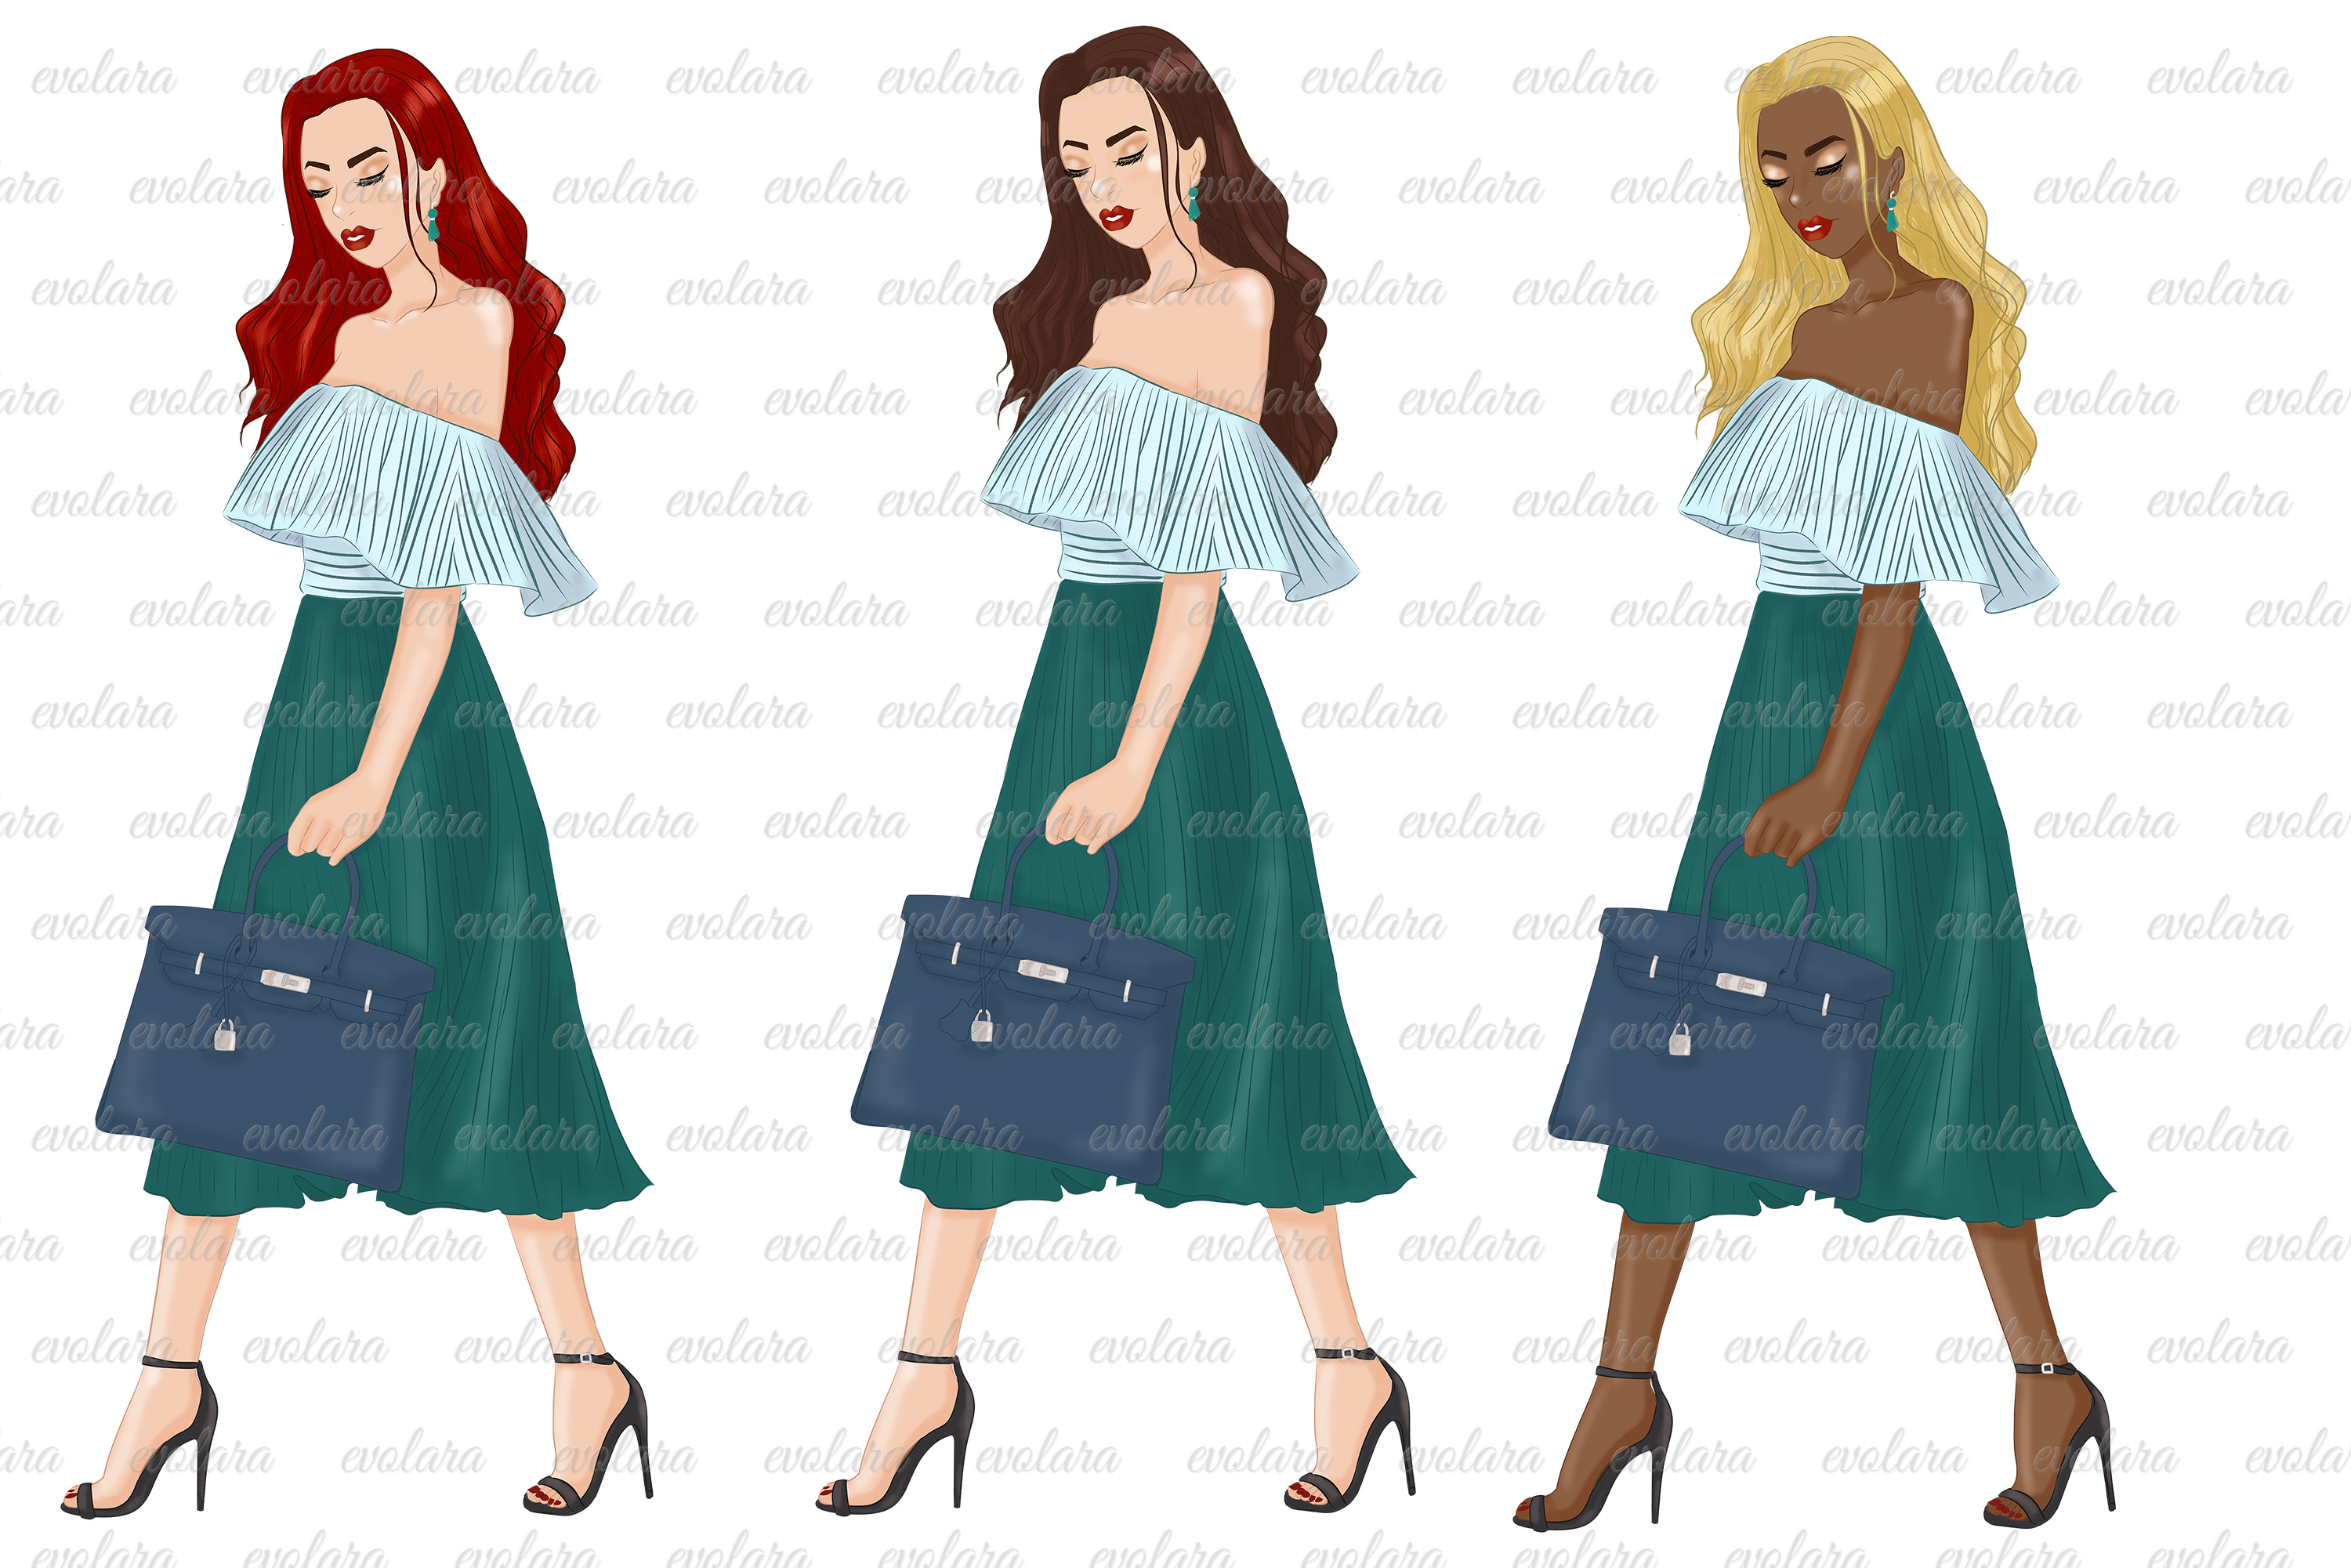 Fashion girl clipart girl boss clipart fashion illustrations example image 2